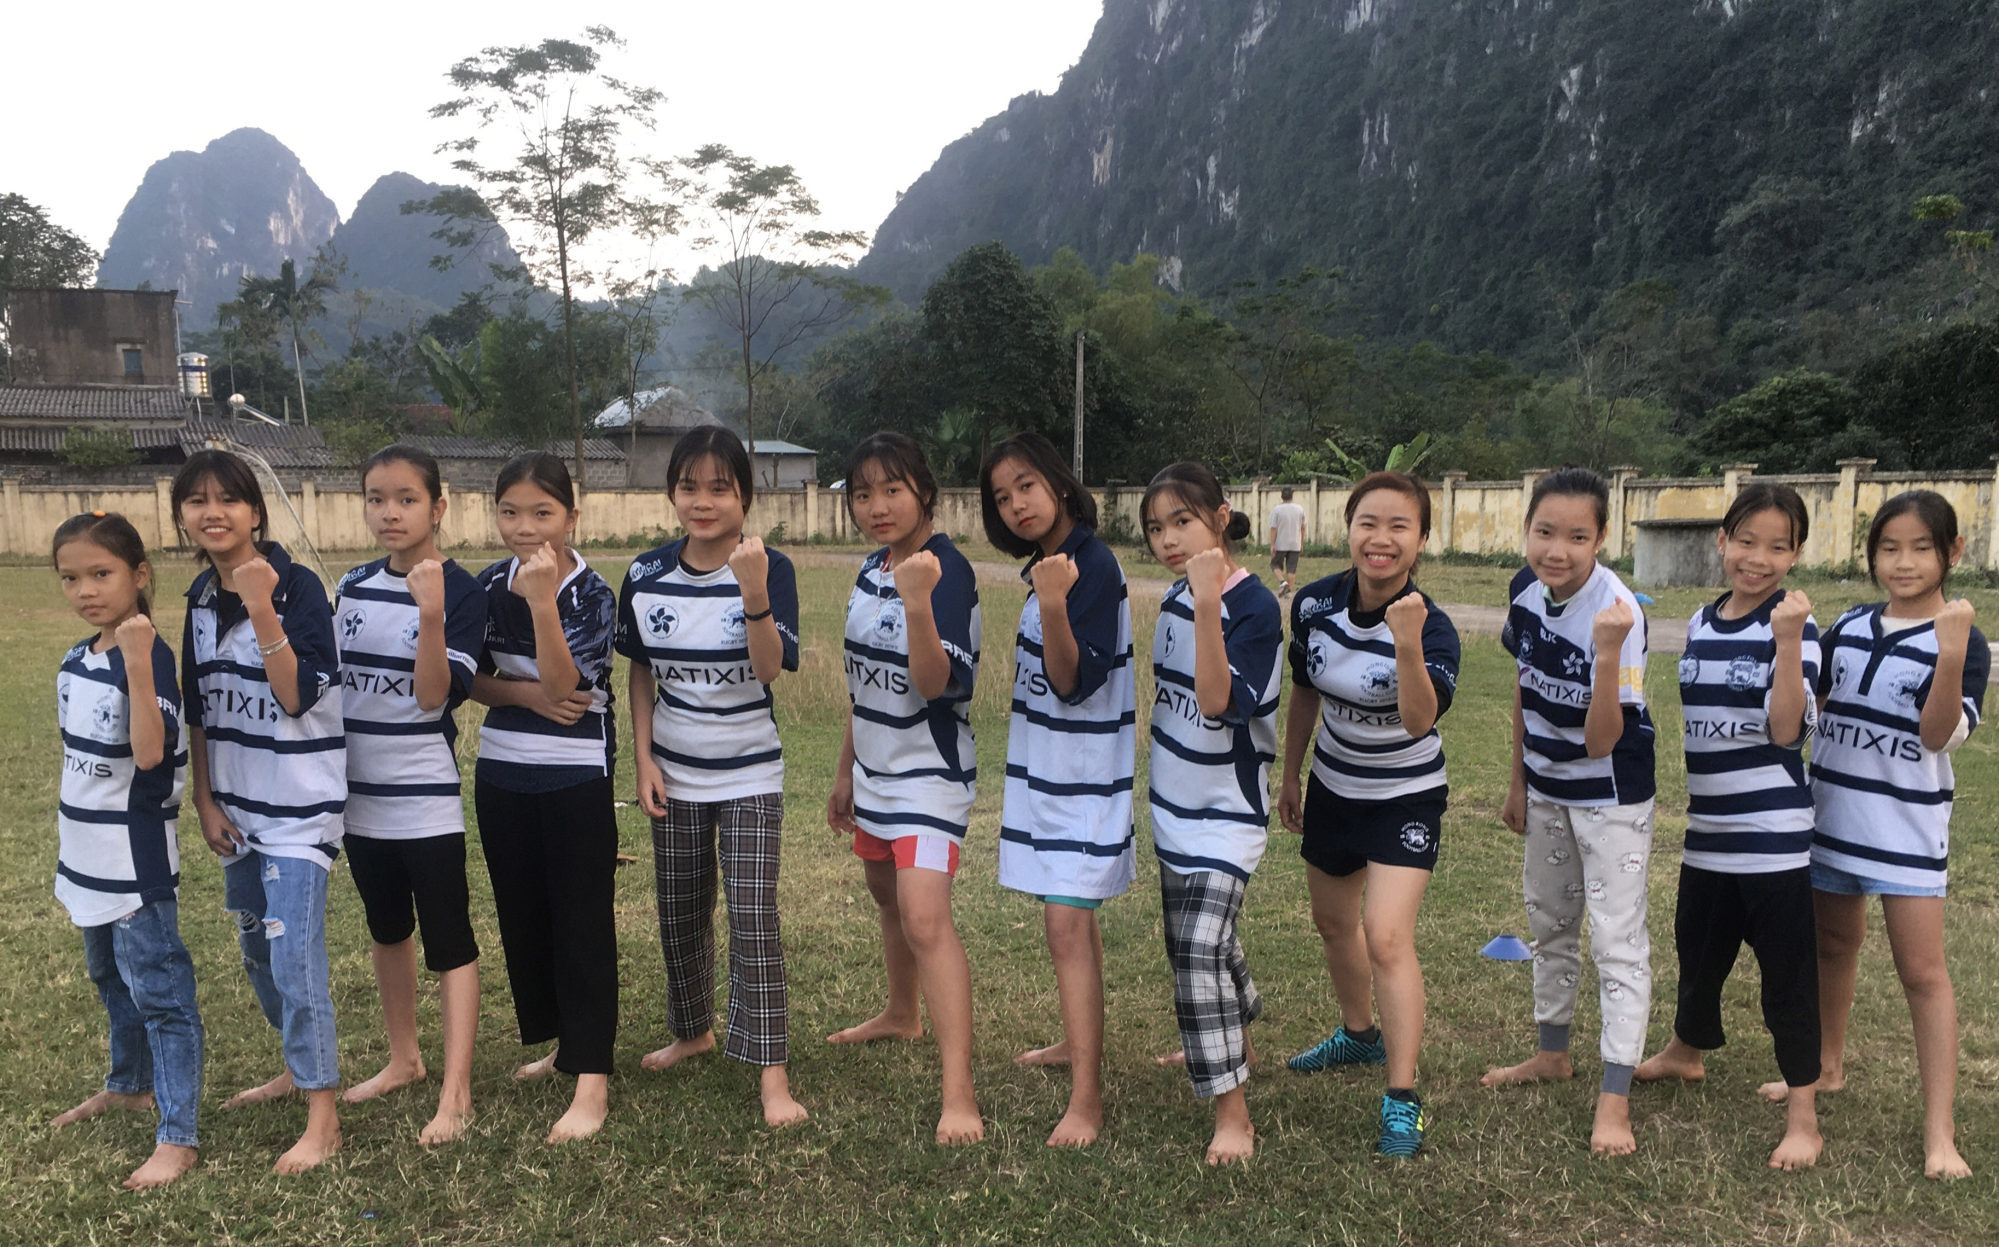 Young rugby players from Vietnam with their new Hong Kong Football Club jerseys in Hoa Binh province, near Hanoi. Photo: ChildFund Rugby